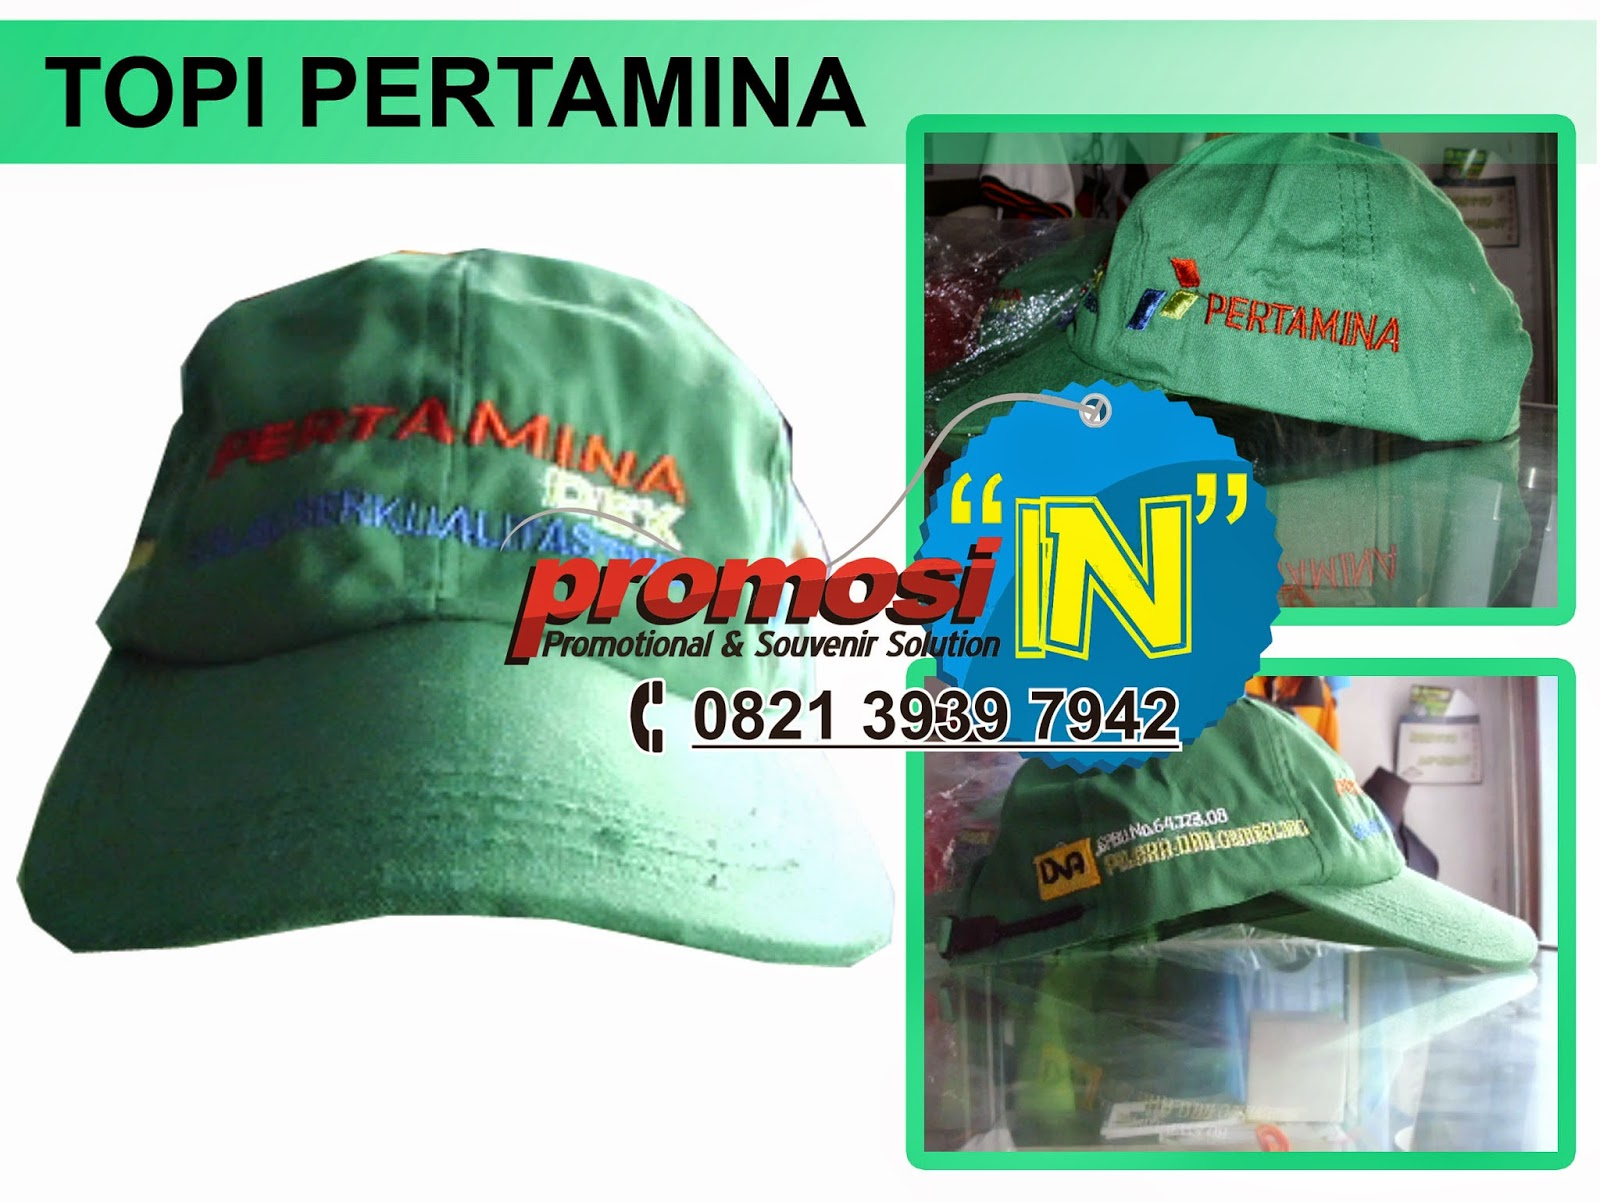 Topi, Supplier Topi Murah, Supplier Topi Surabaya, Supplier Topi Anak,